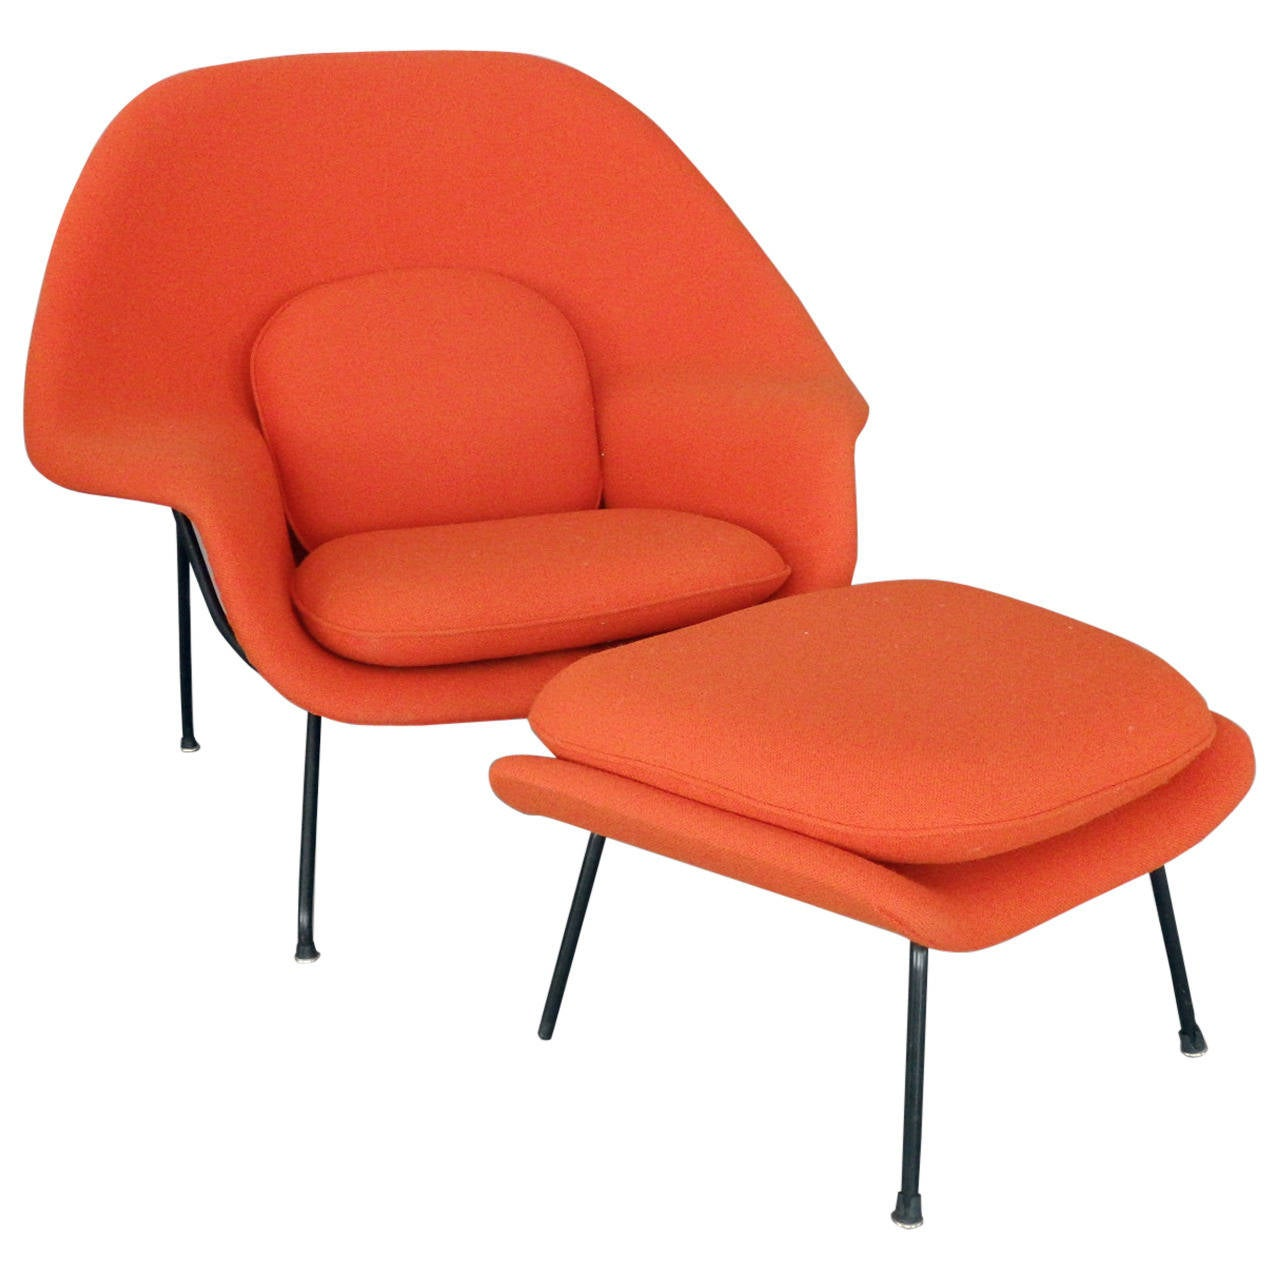 Saarinen For Knoll Womb Chair With Ottoman At 1stdibs